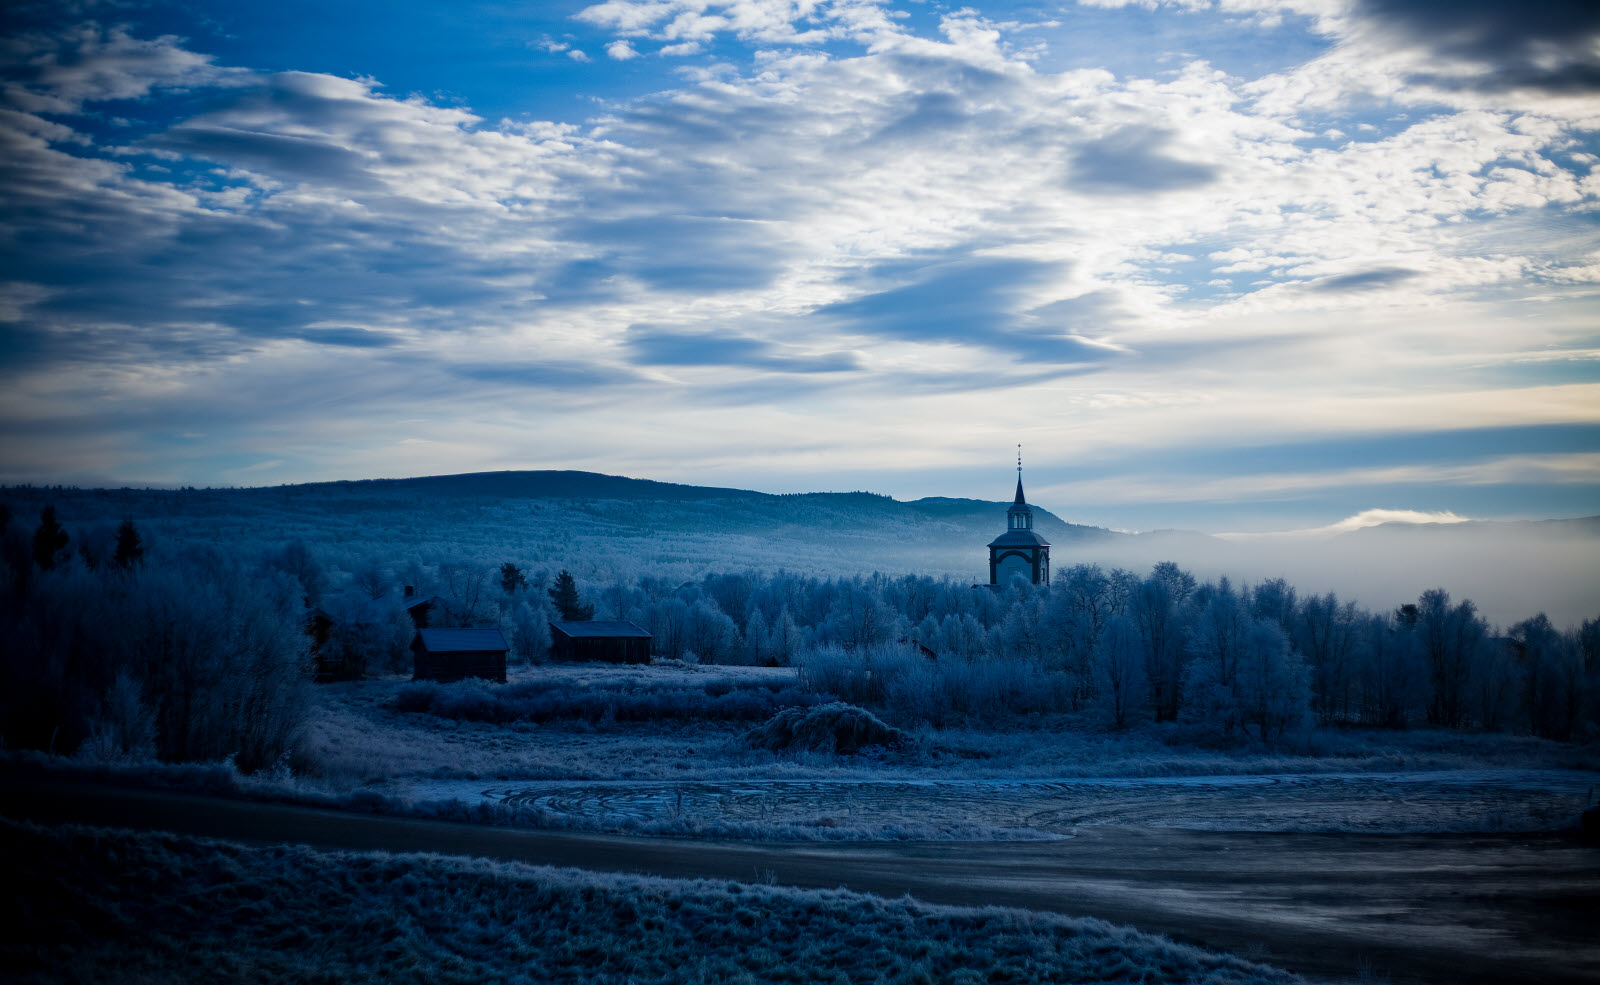 2185938-rros-cold-morning_by_Kjell_Jakobsen.jpg